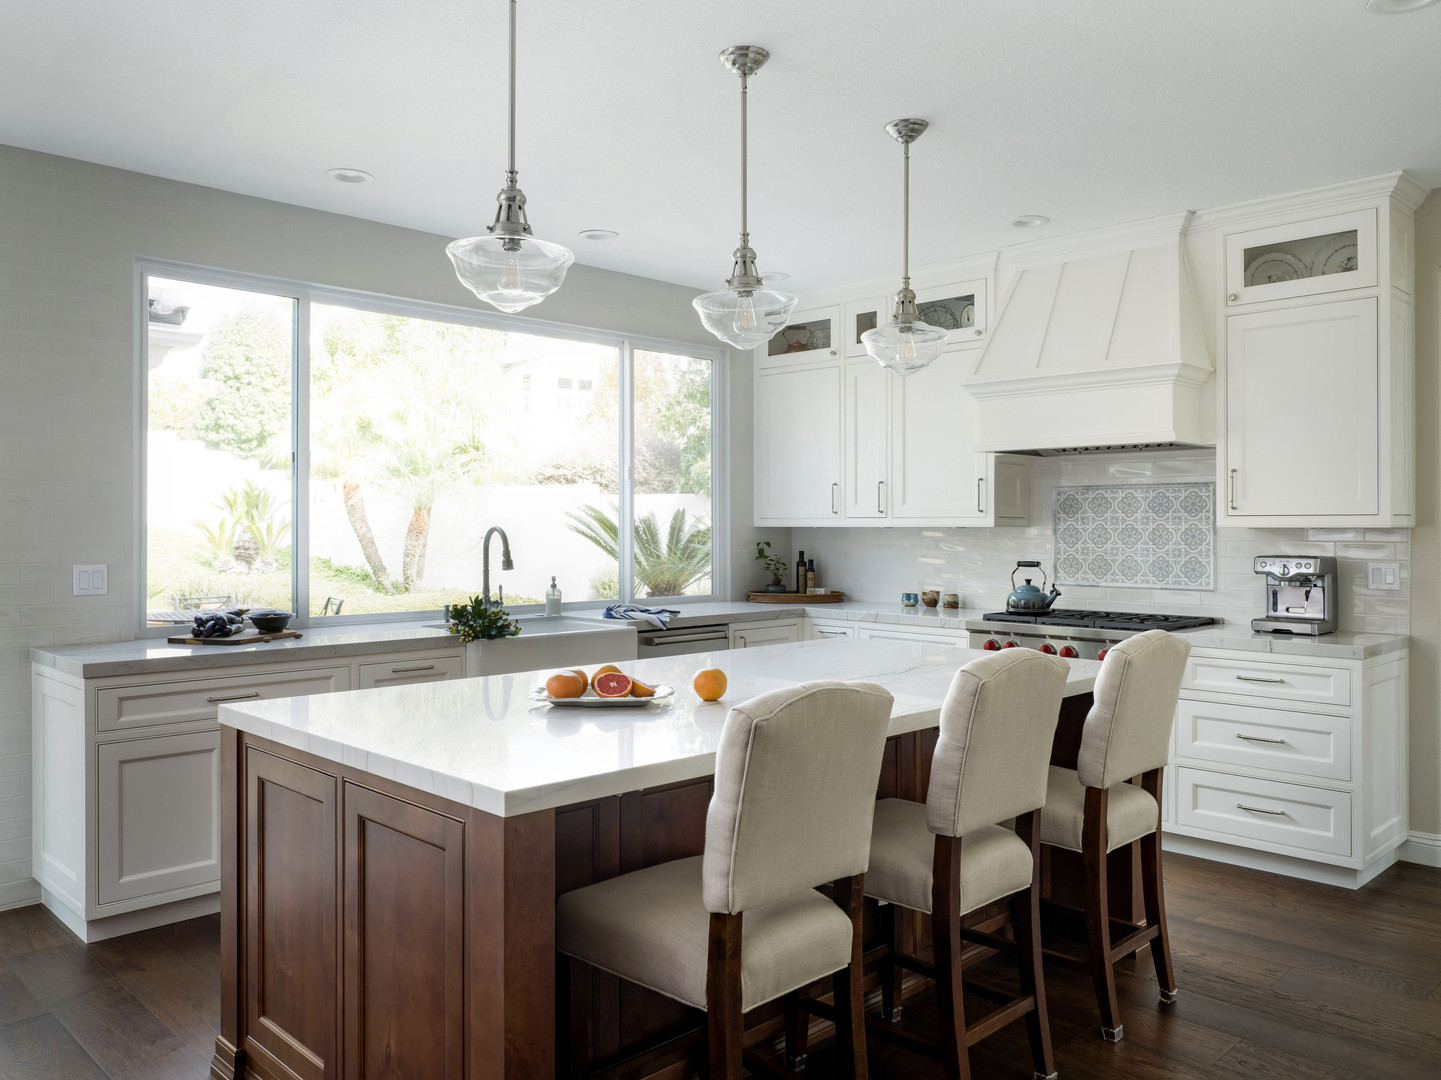 Classically Apoointed Kitchen